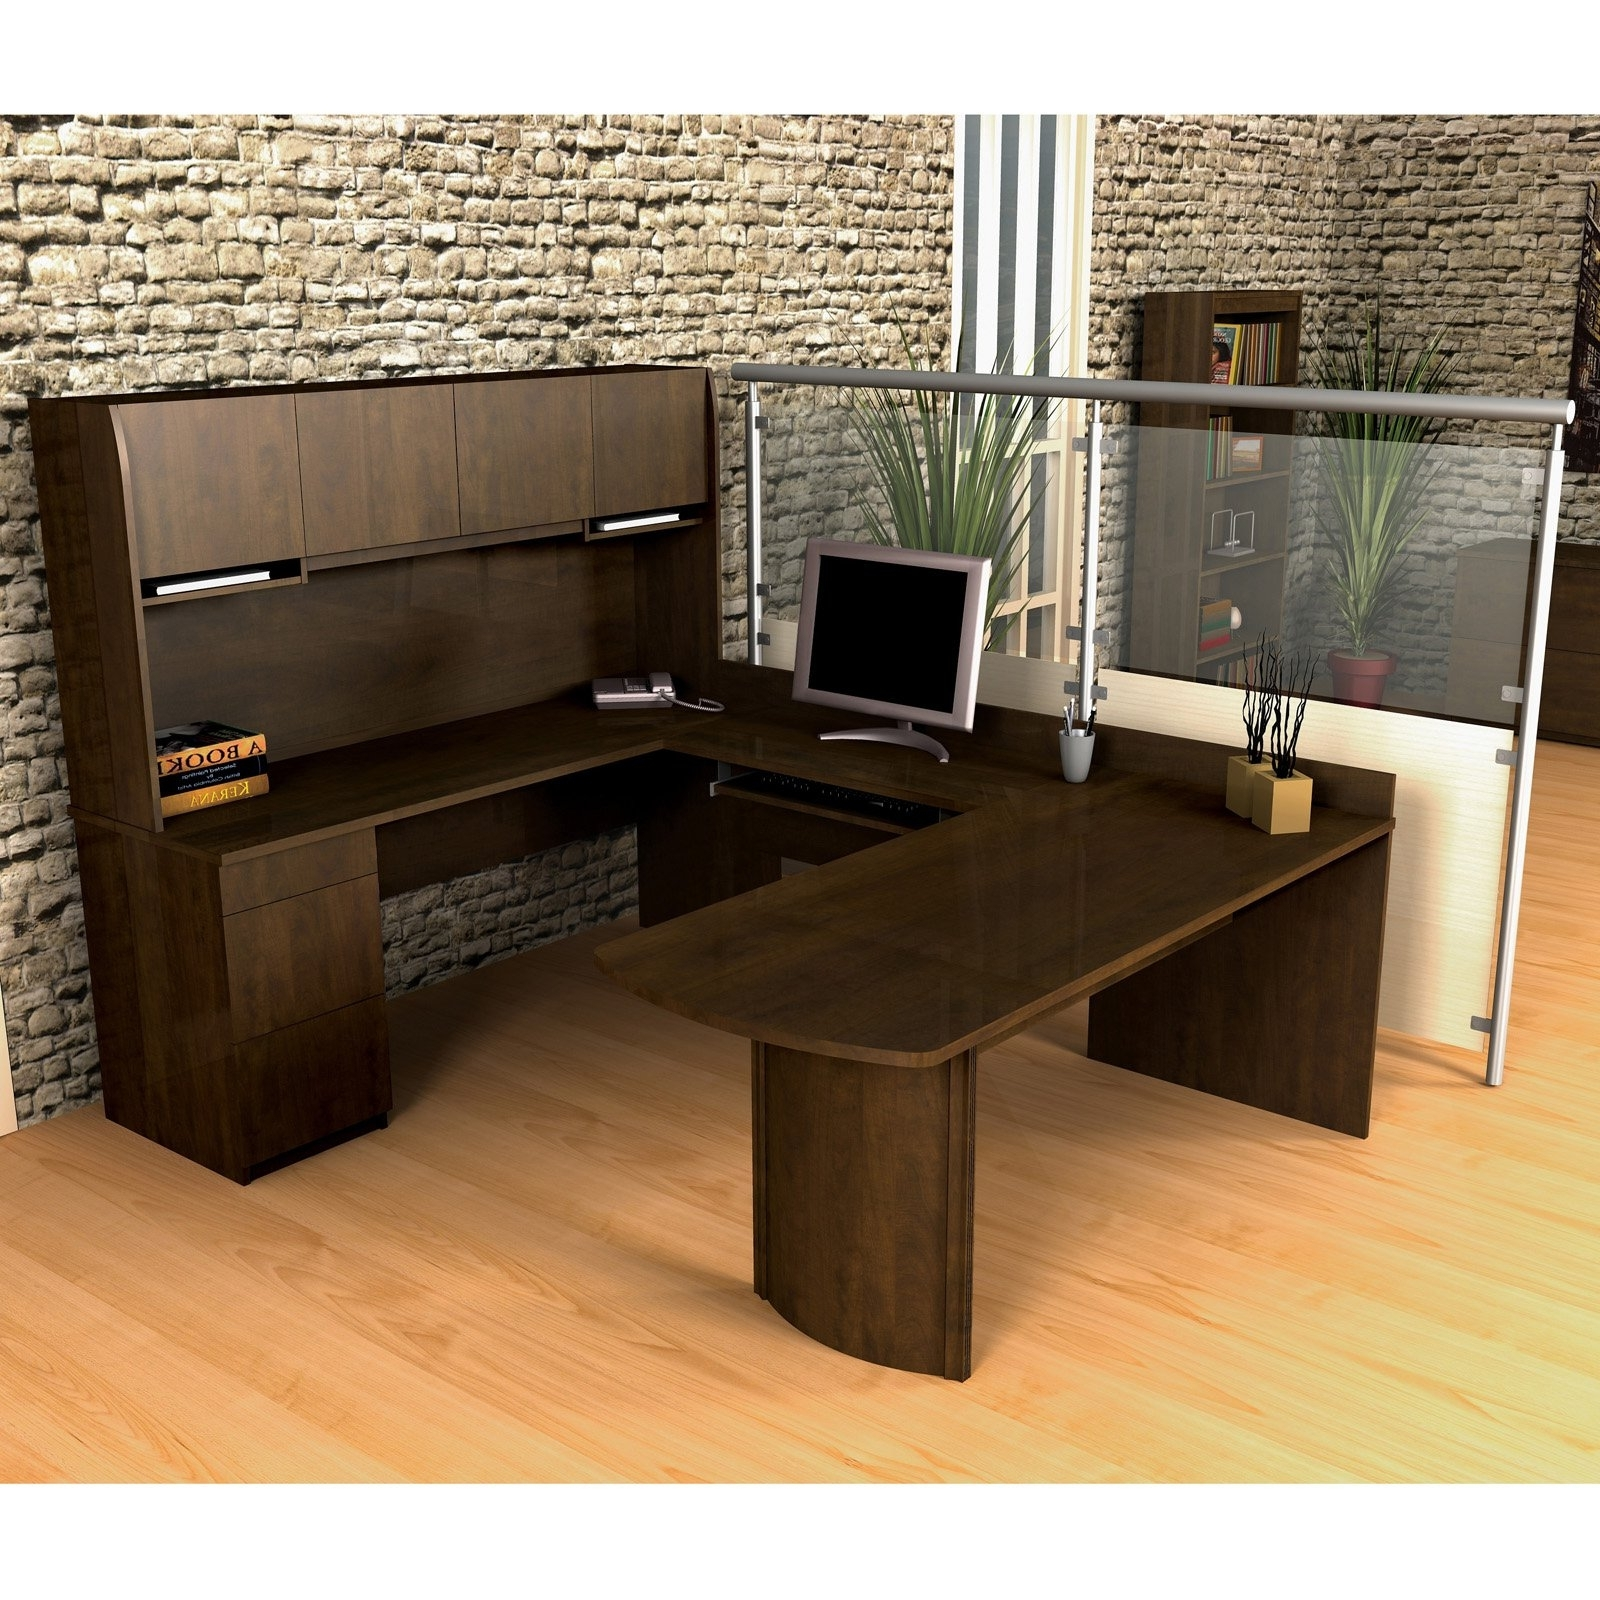 U Shaped Computer Desks Within Widely Used U Shaped Computer Desk Plans — Desk Design : Executive U Shaped (View 20 of 20)